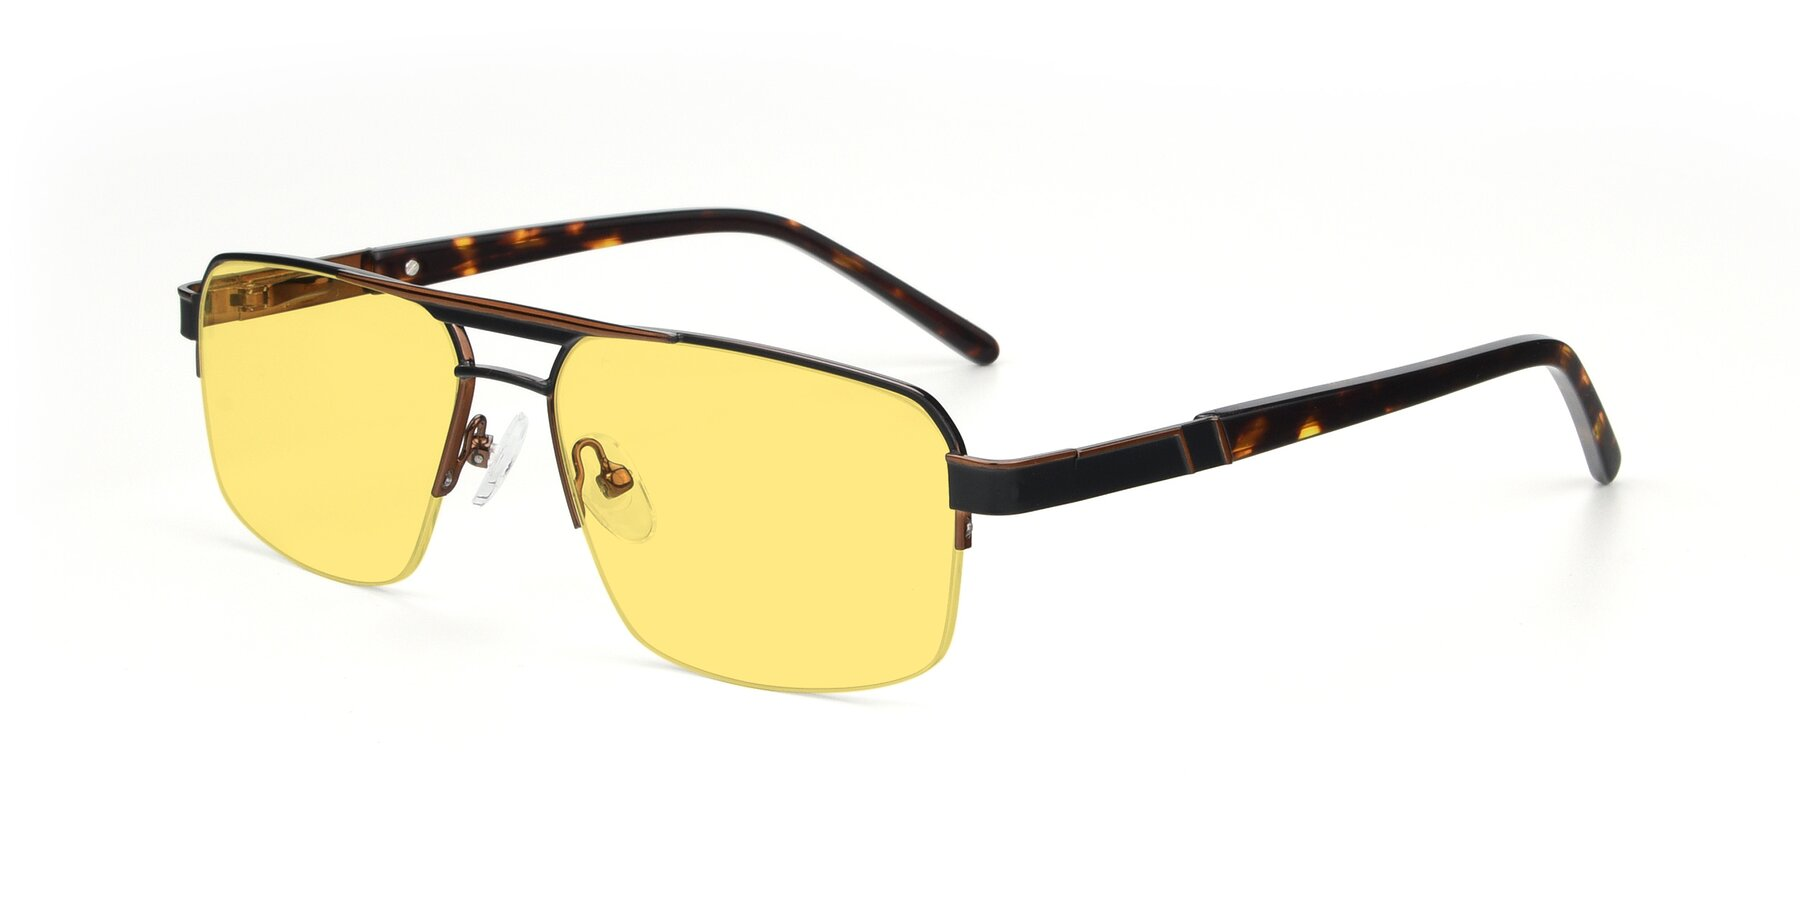 Angle of 19004 in Black-Bronze with Medium Yellow Tinted Lenses